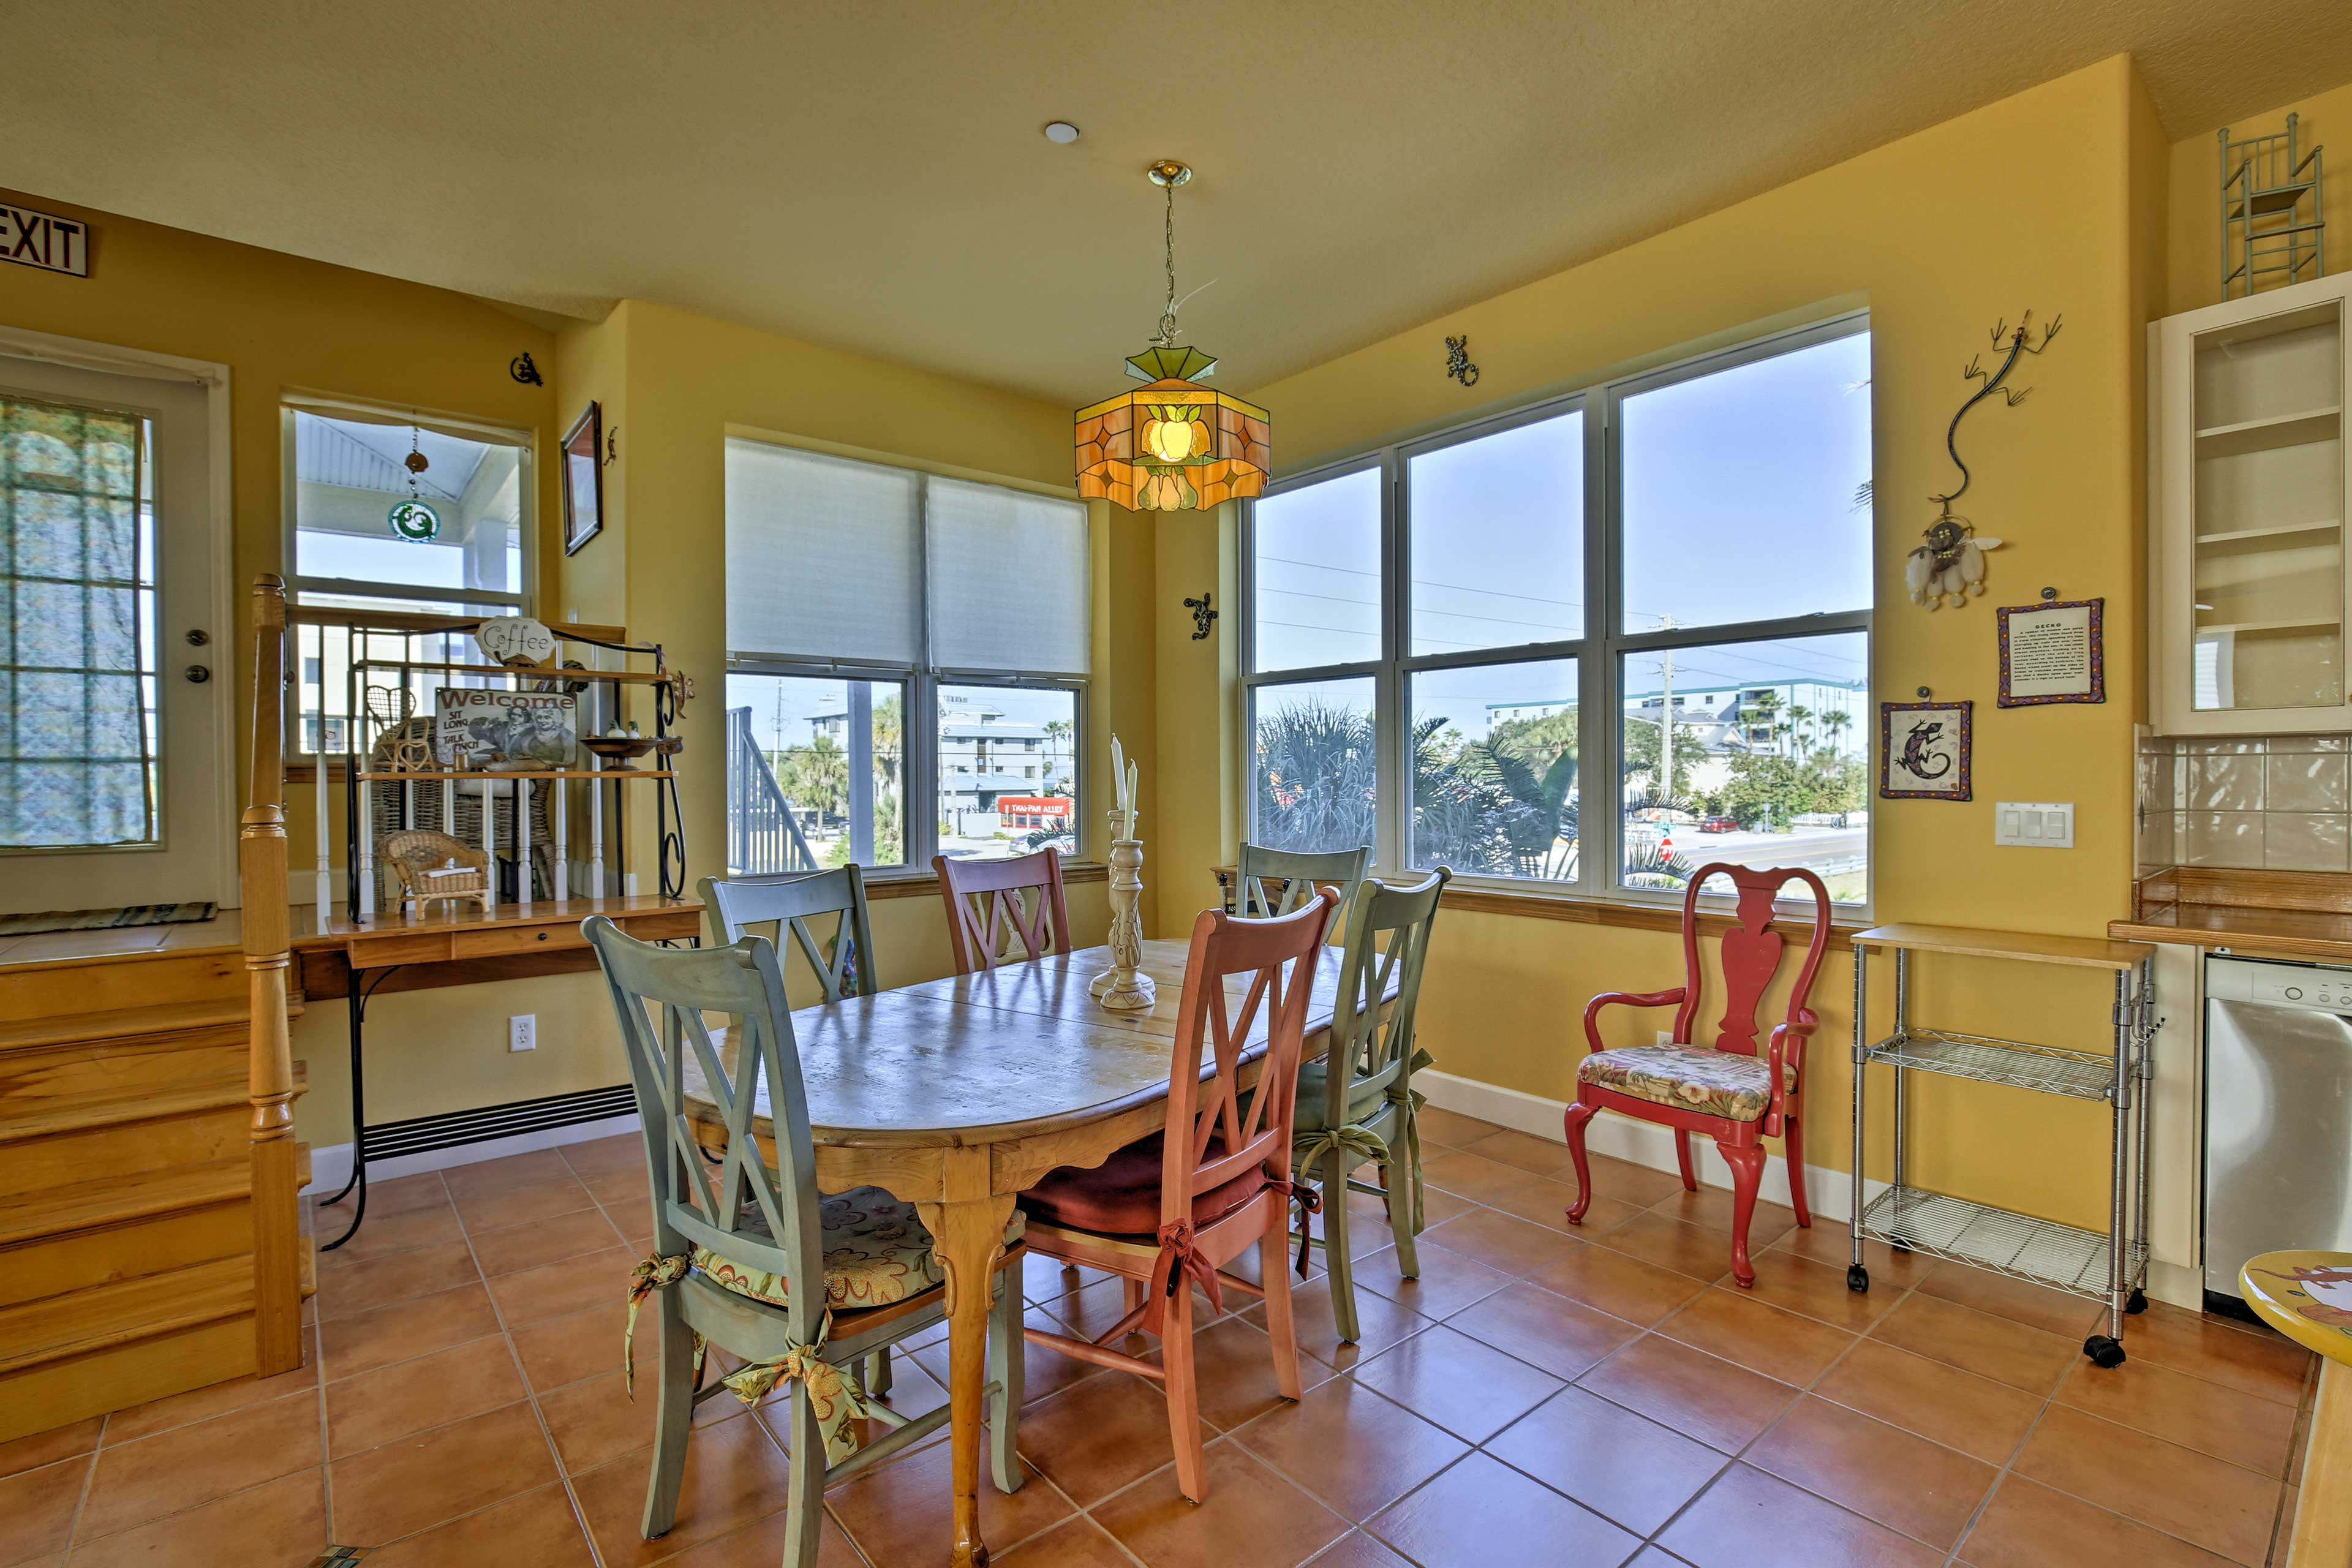 You'll feel right at home as you dine-in with the family at the 6-person table.